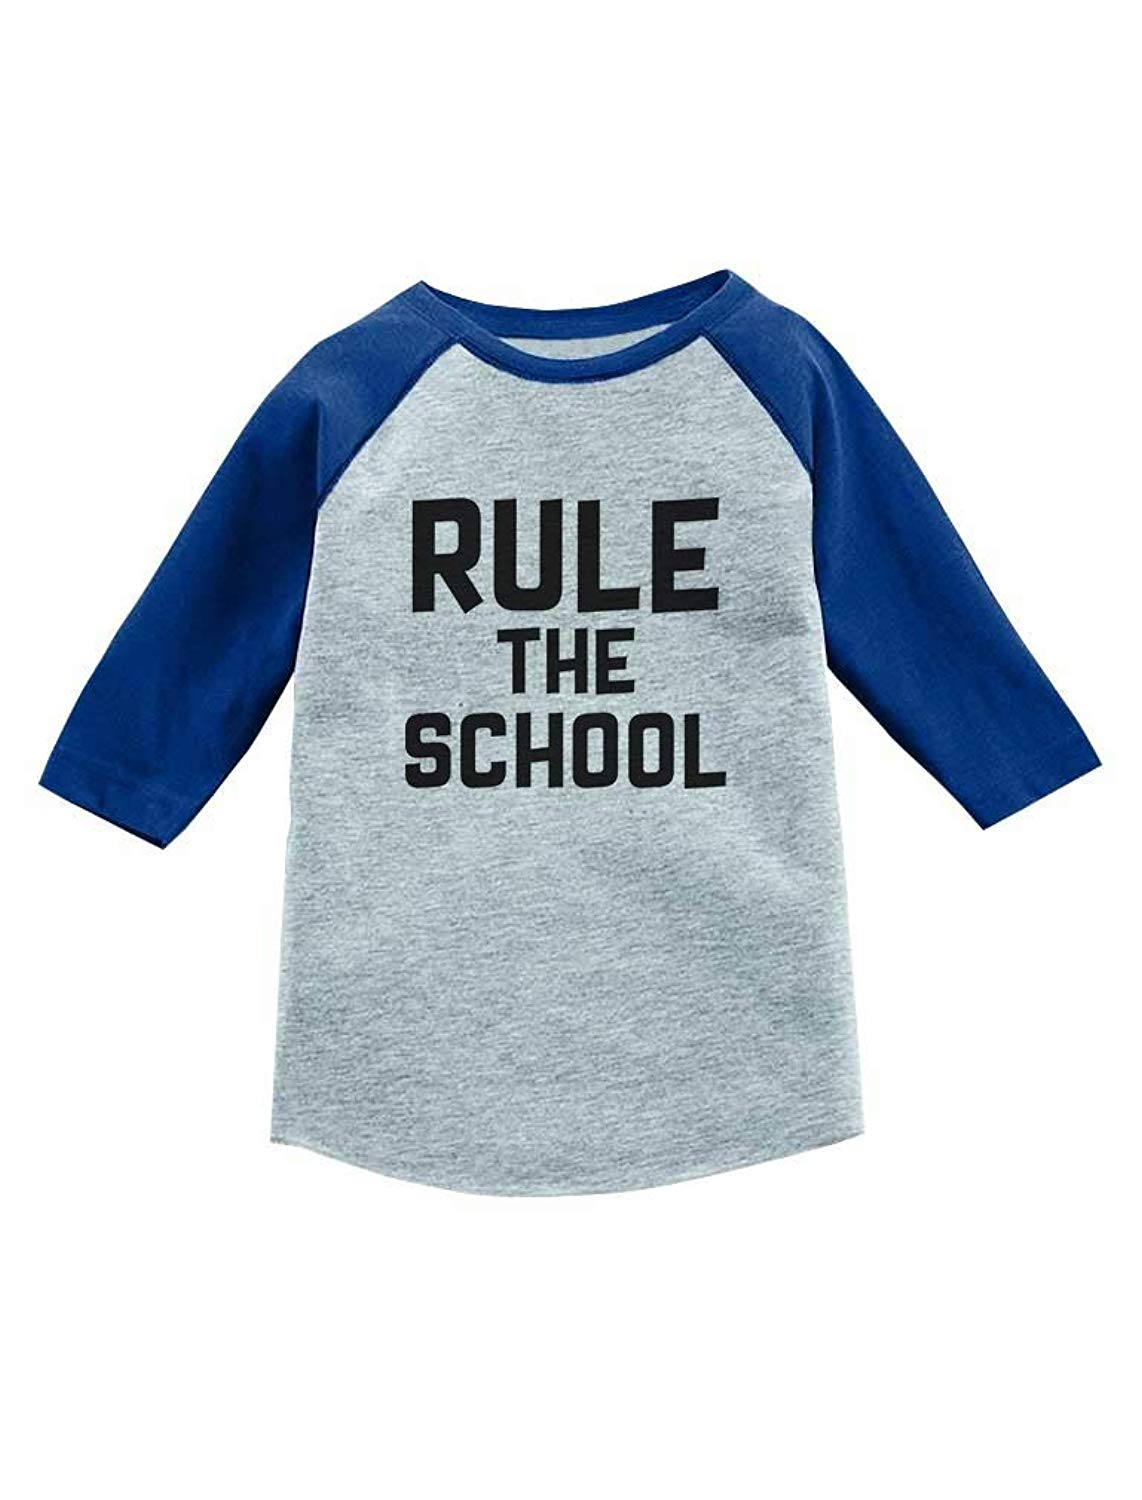 81c2c3268 Get Quotations · Rule The School Funny Back to School 3/4 Sleeve Baseball  Jersey Toddler Shirt